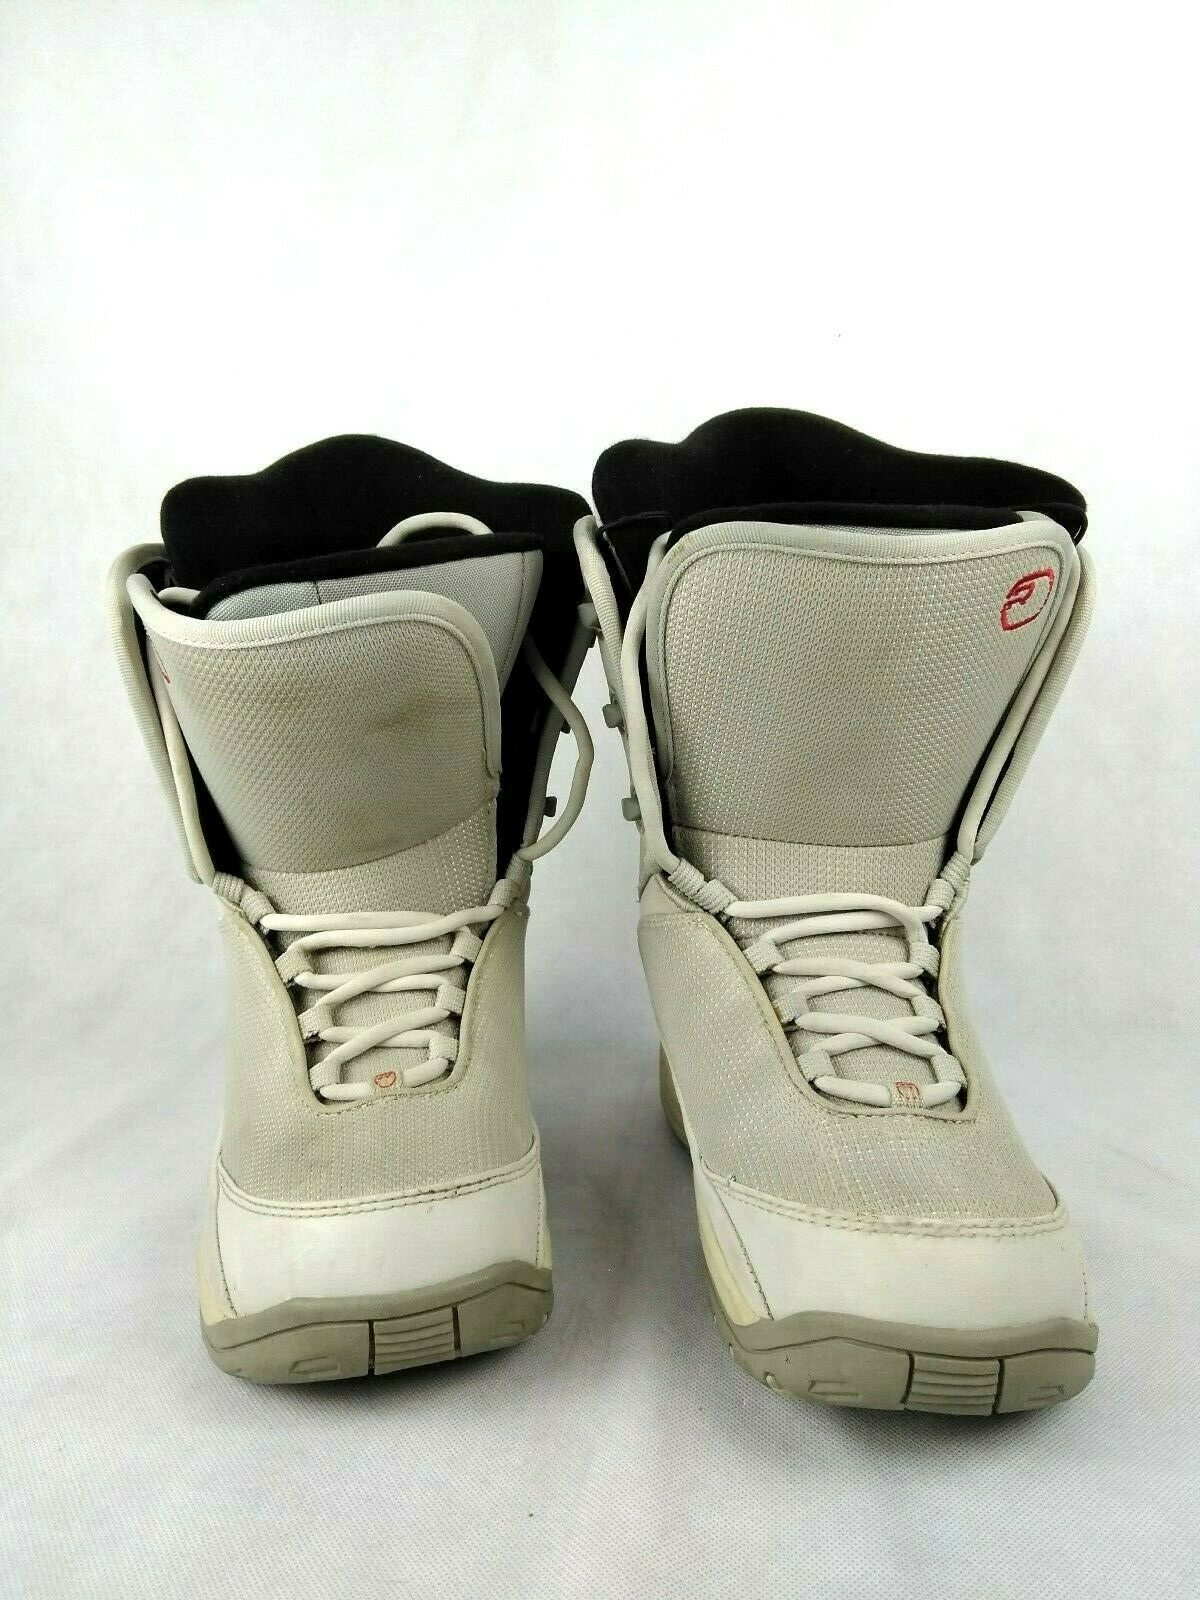 RIDEBOOTMFG RIDE BOOT  MFG BASE Womens Snowboarding Boots White G  size 9 US  high quality